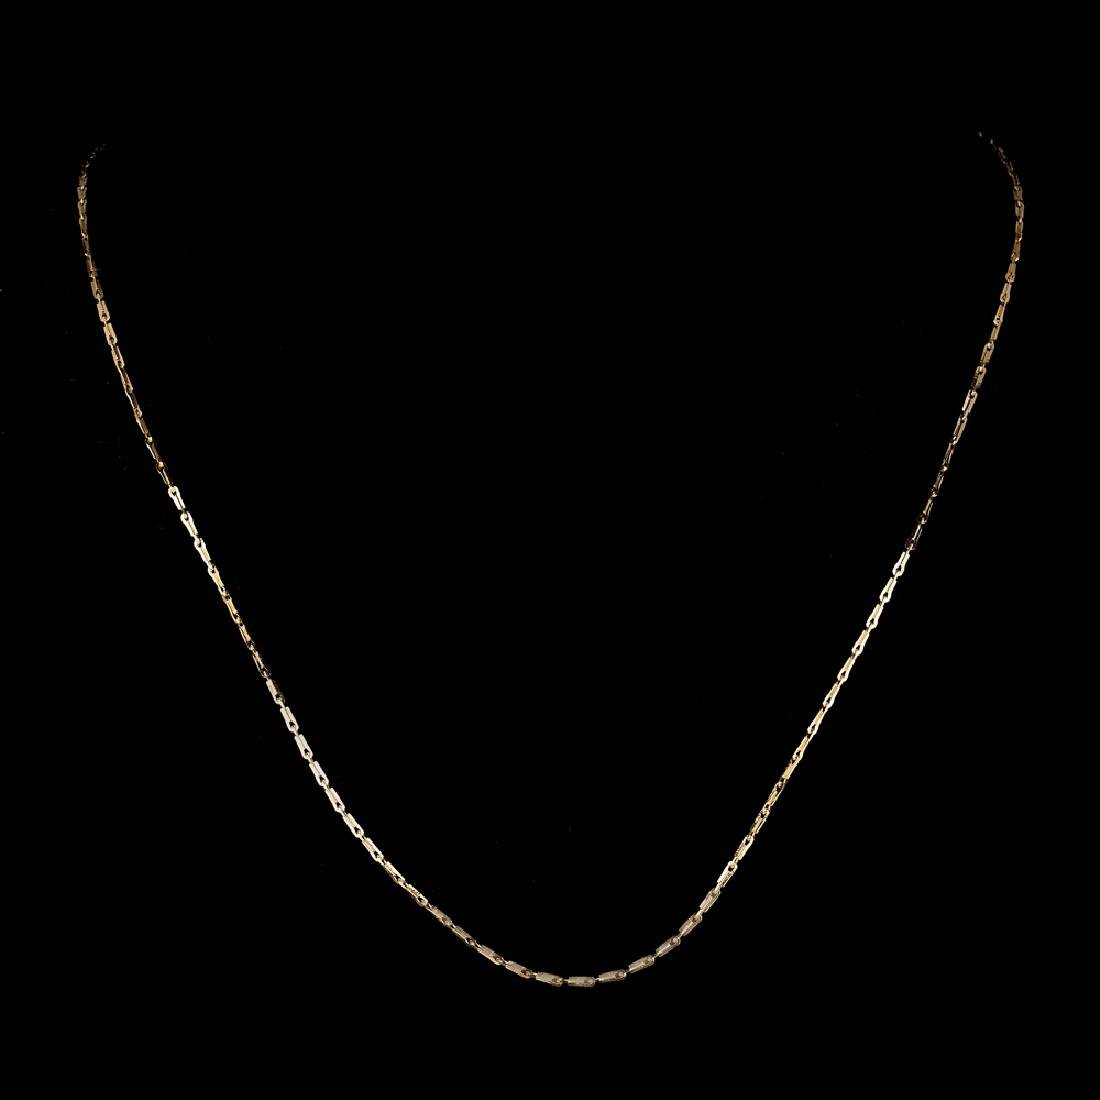 *Fine Jewelry 14 KT Gold, 2.1GR, 18'' Pinsetta Chain